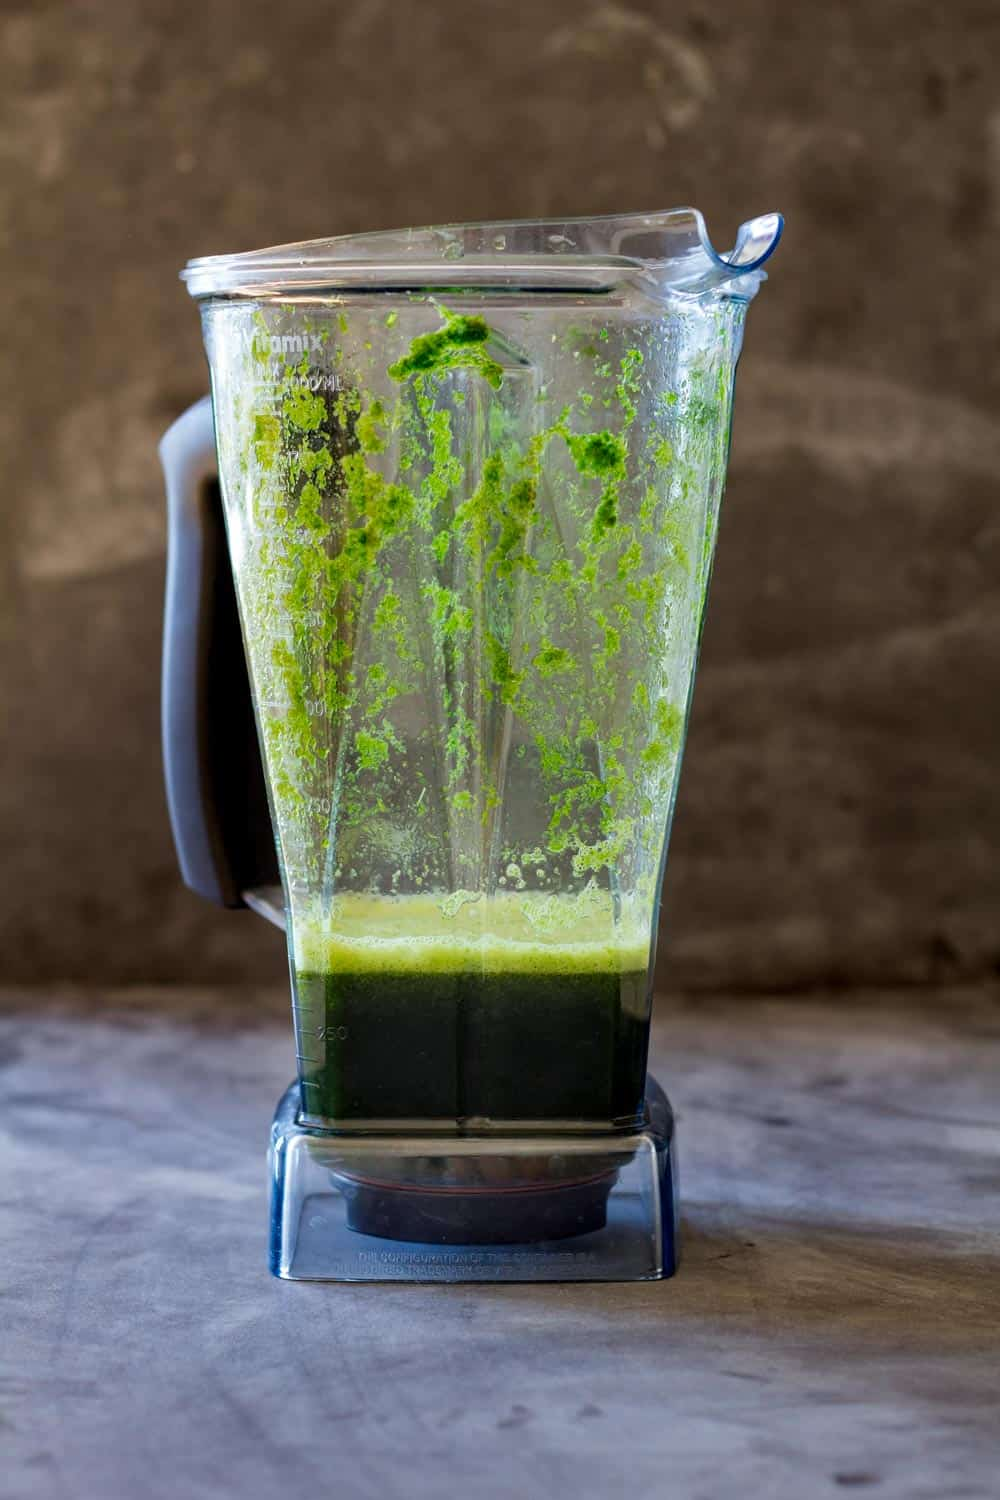 Blender with fresh coriander blended with water.